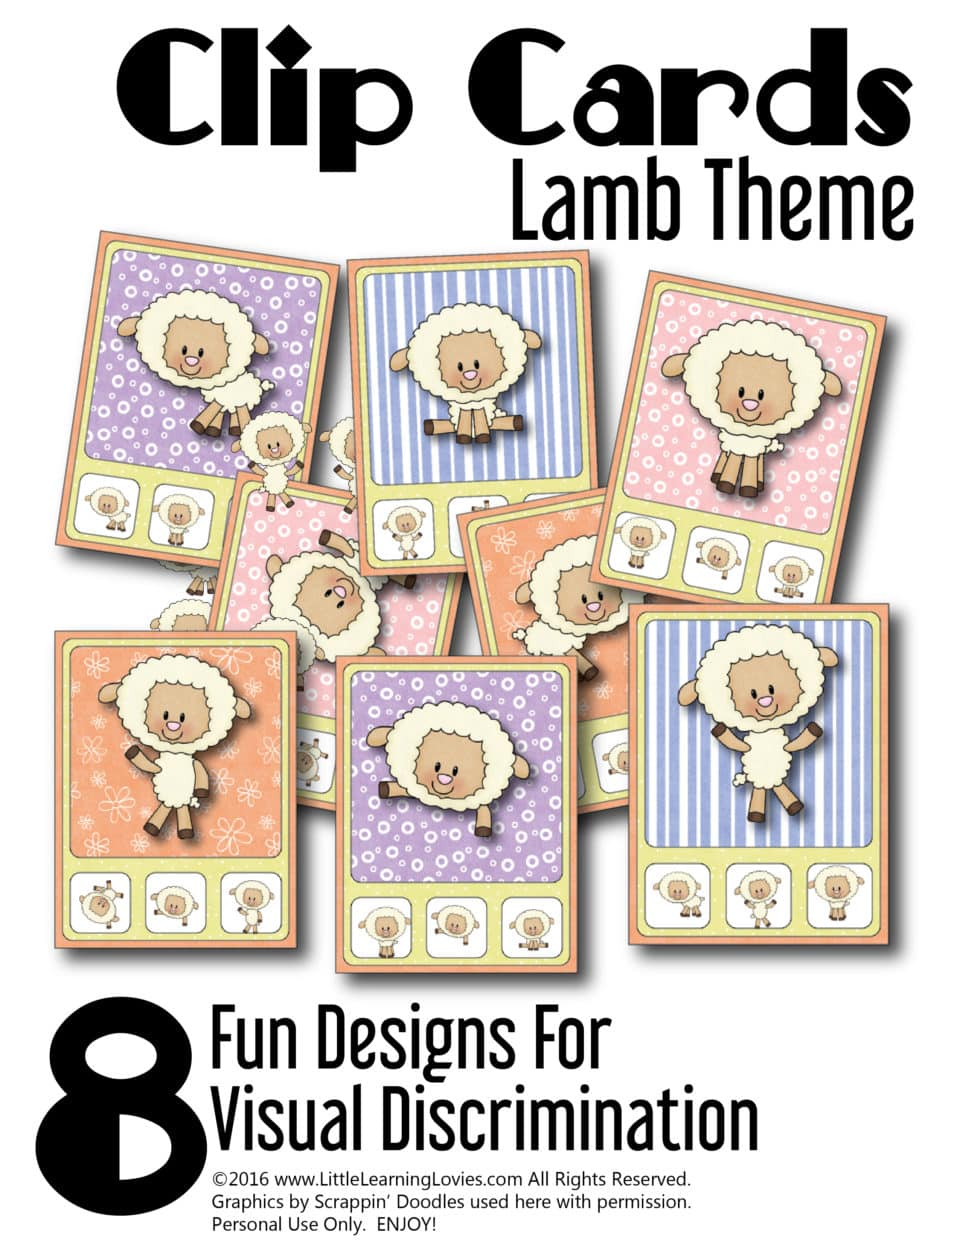 Free clip cards with a lamb theme in our Preschool Printable pack from Little Learning Lovies